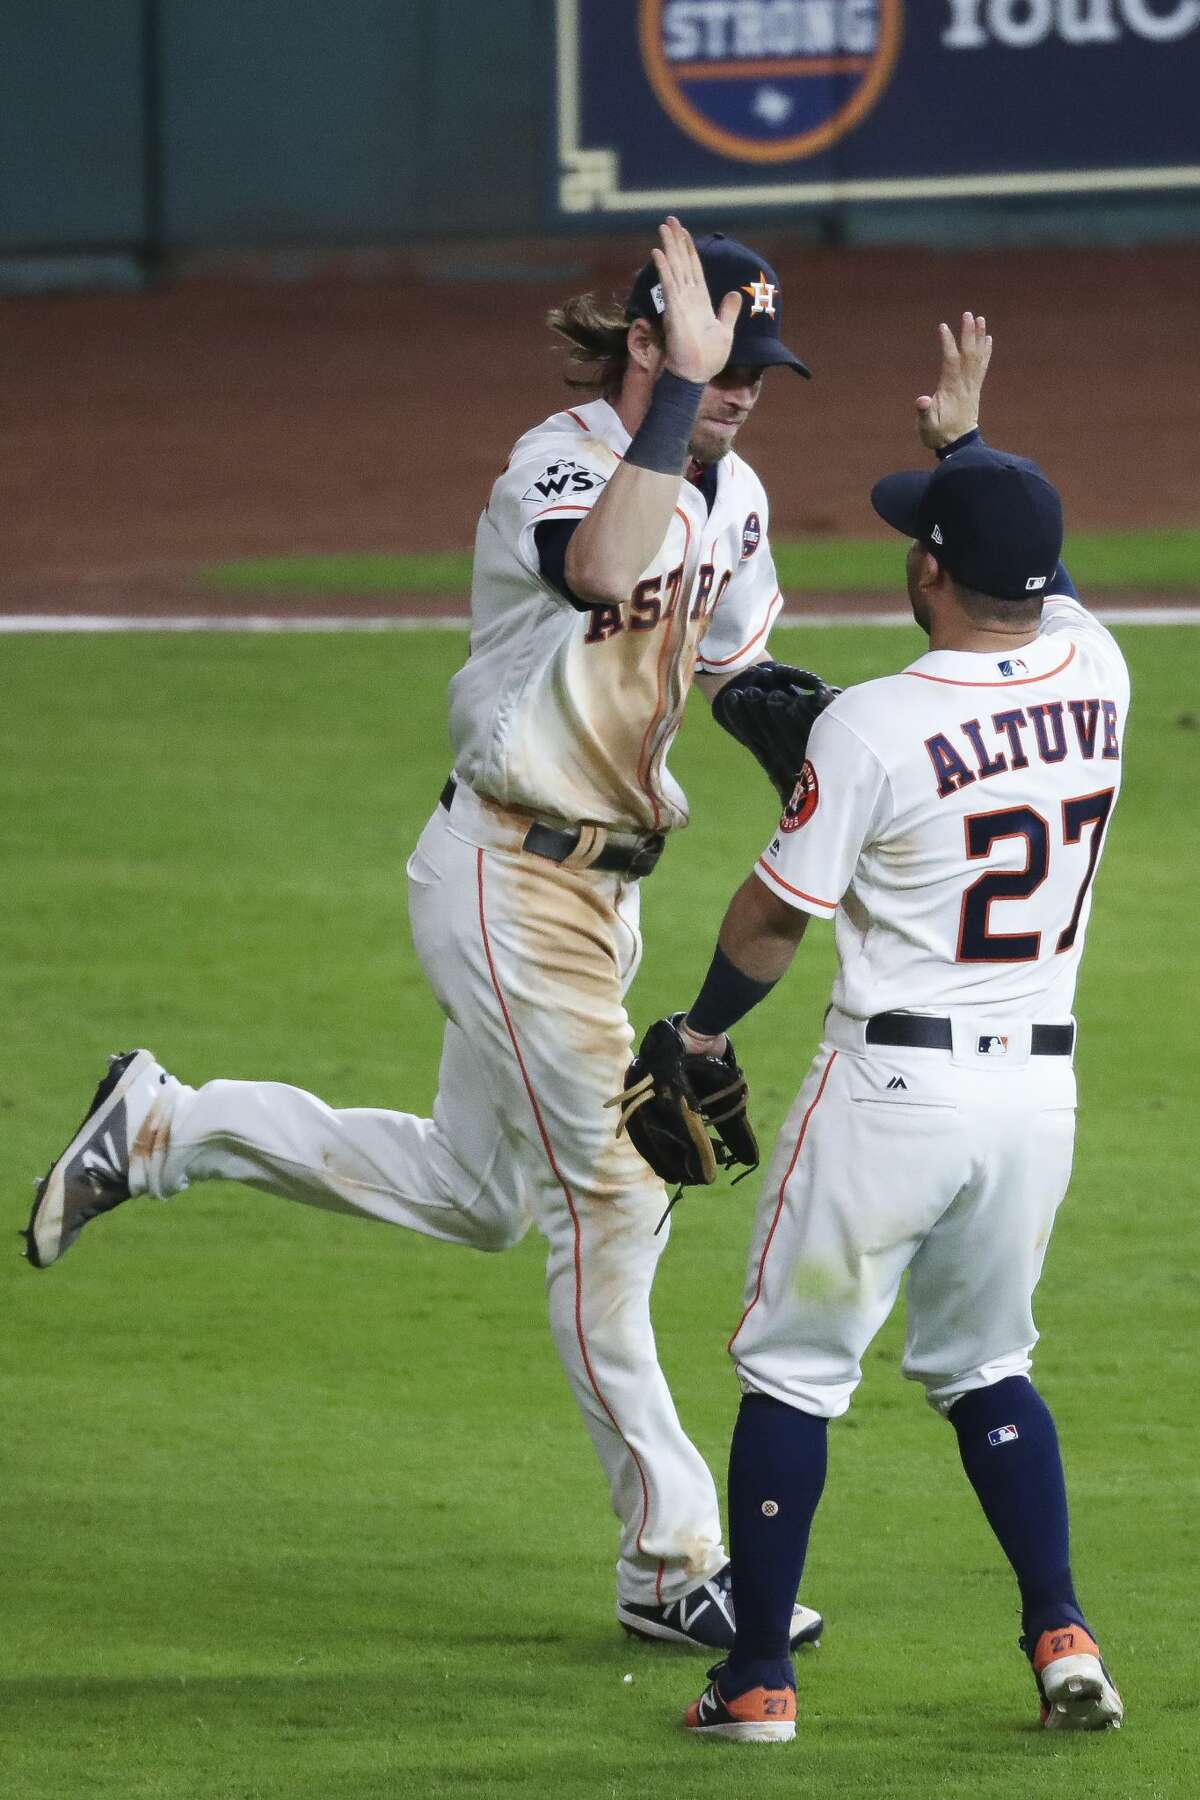 Houston Astros second baseman Jose Altuve (27) high fives right fielder Josh Reddick (22) after Reddick caught the last out of the ninth inning as the Houston Astros beat the Los Angeles Dodgers 5-3 in Game 3 of the World Series at Minute Maid Park Friday, Oct. 27, 2017 in Houston.